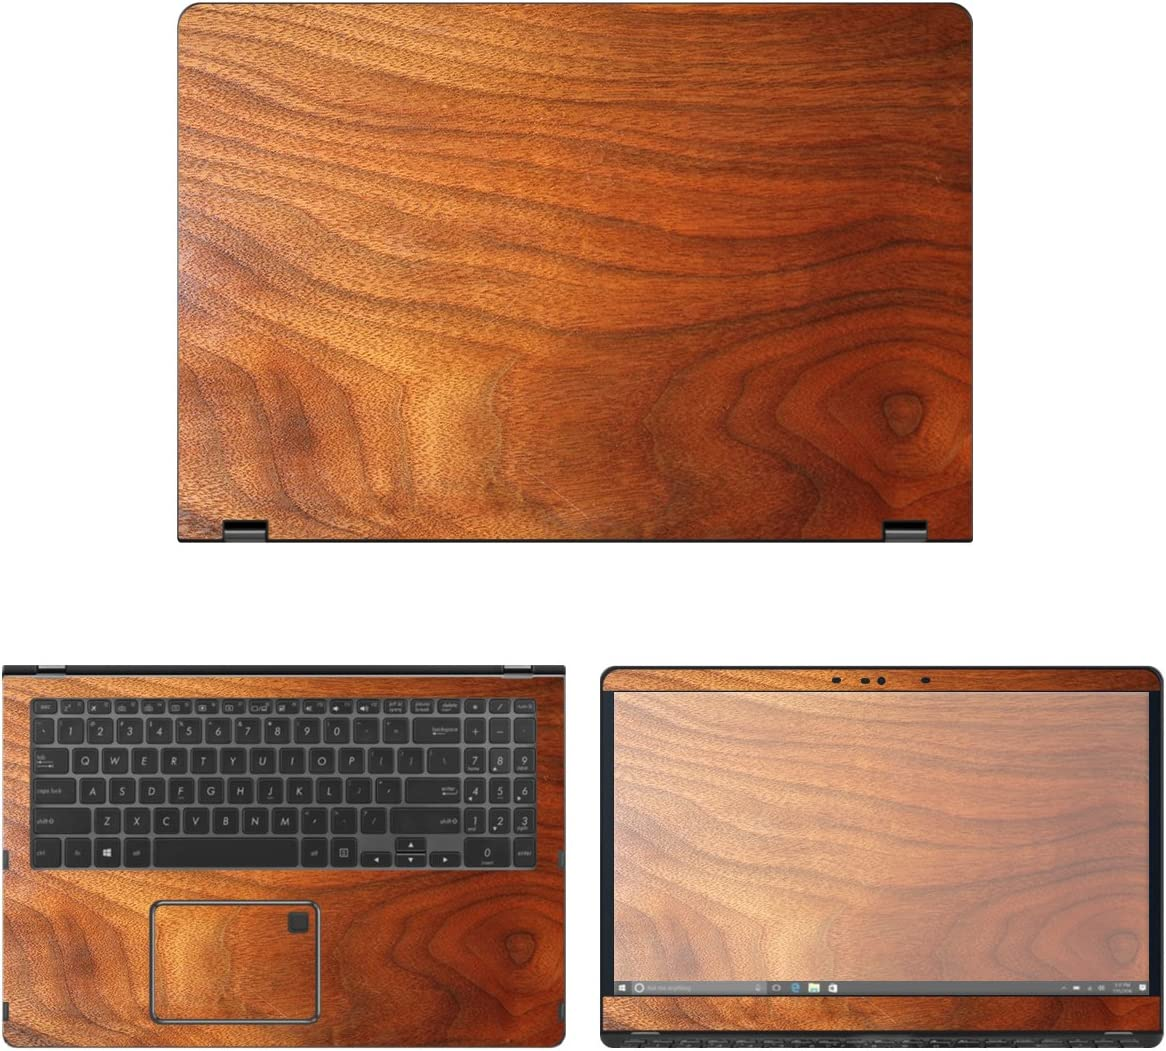 decalrus Purchase - Protective Decal Free Shipping New Wood Skin Asus for Q525UA 2- Sticker